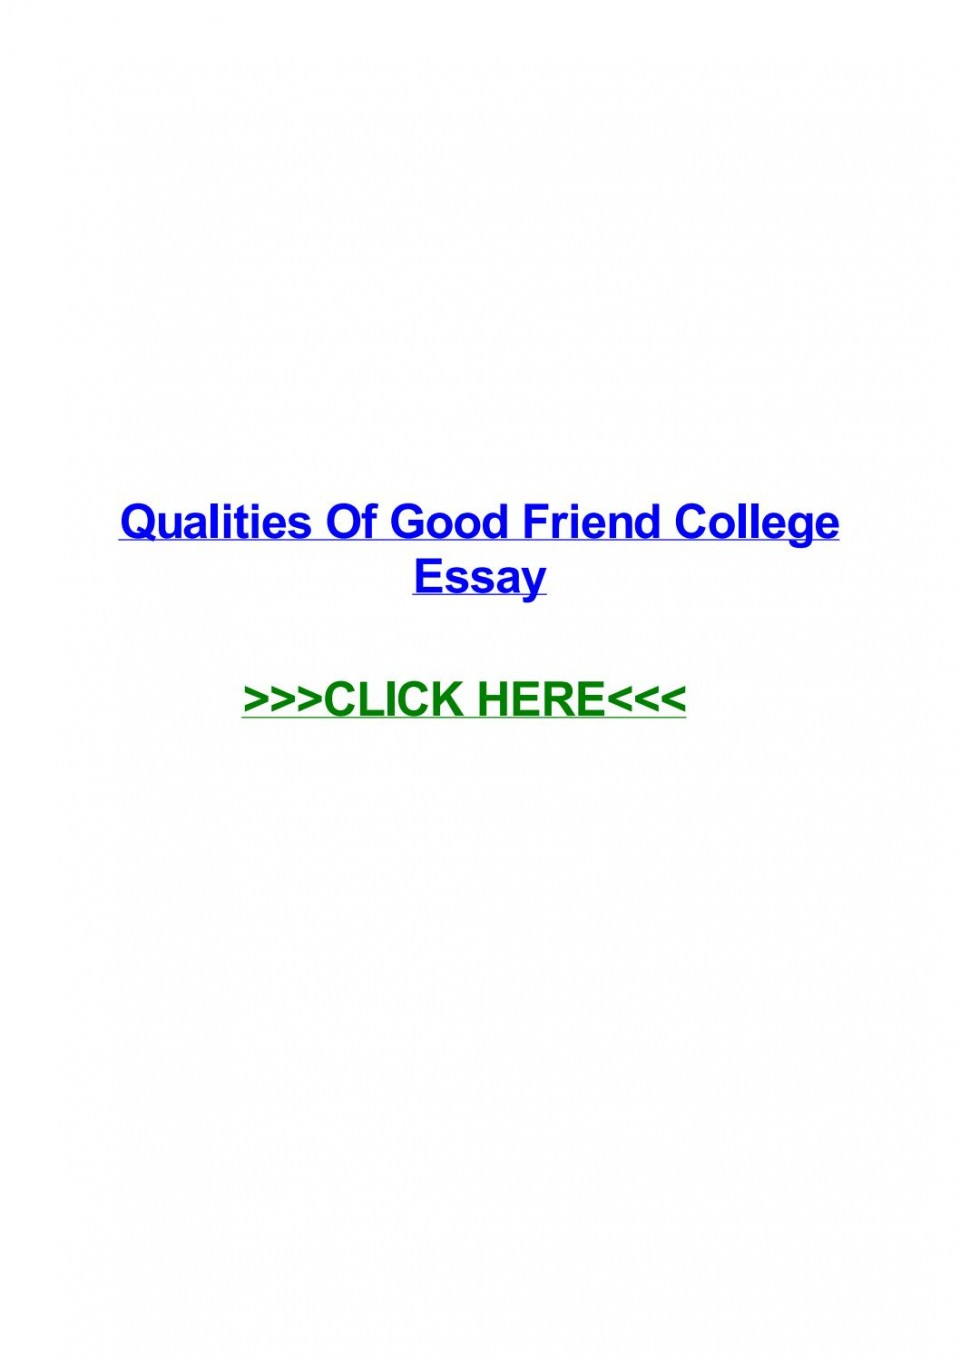 005 Essay Example Page 1 Qualities Of Good Amazing Friends Friendship My Best Friend Should Have A Expository 960